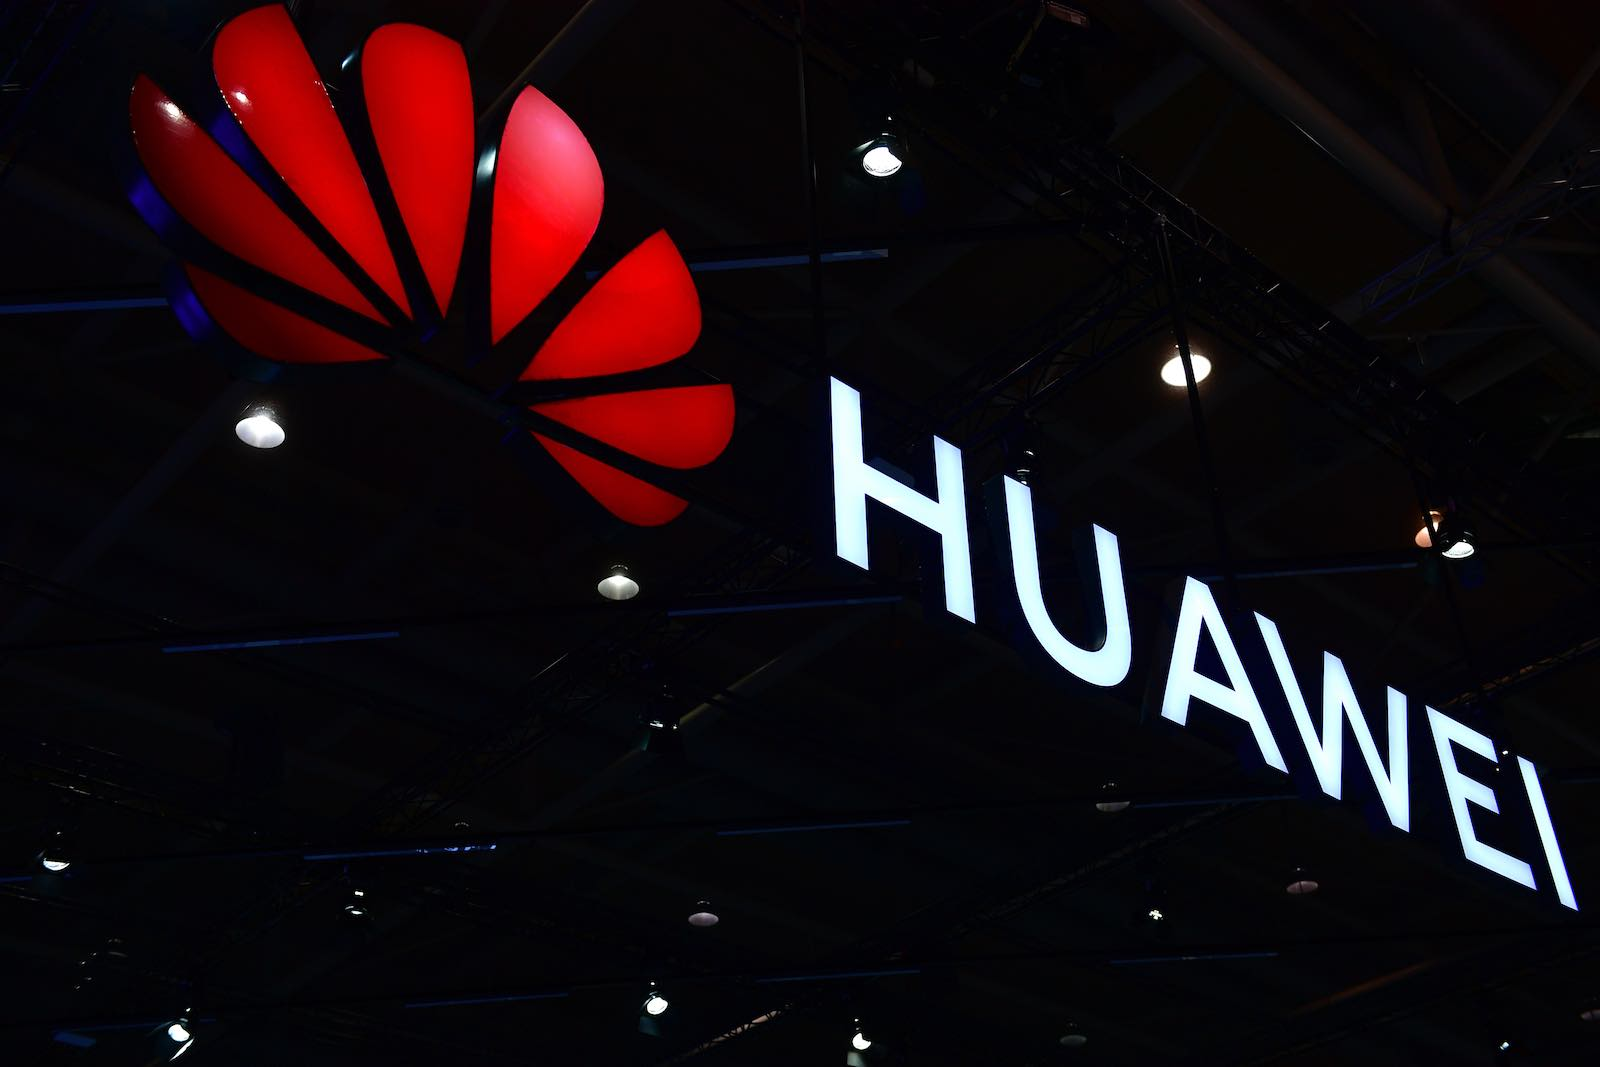 The Huawei logo displayed at the 2018 CeBIT technology trade fair on 12 June in Hanover, Germany (Photo: Alexander Koerner/Getty)